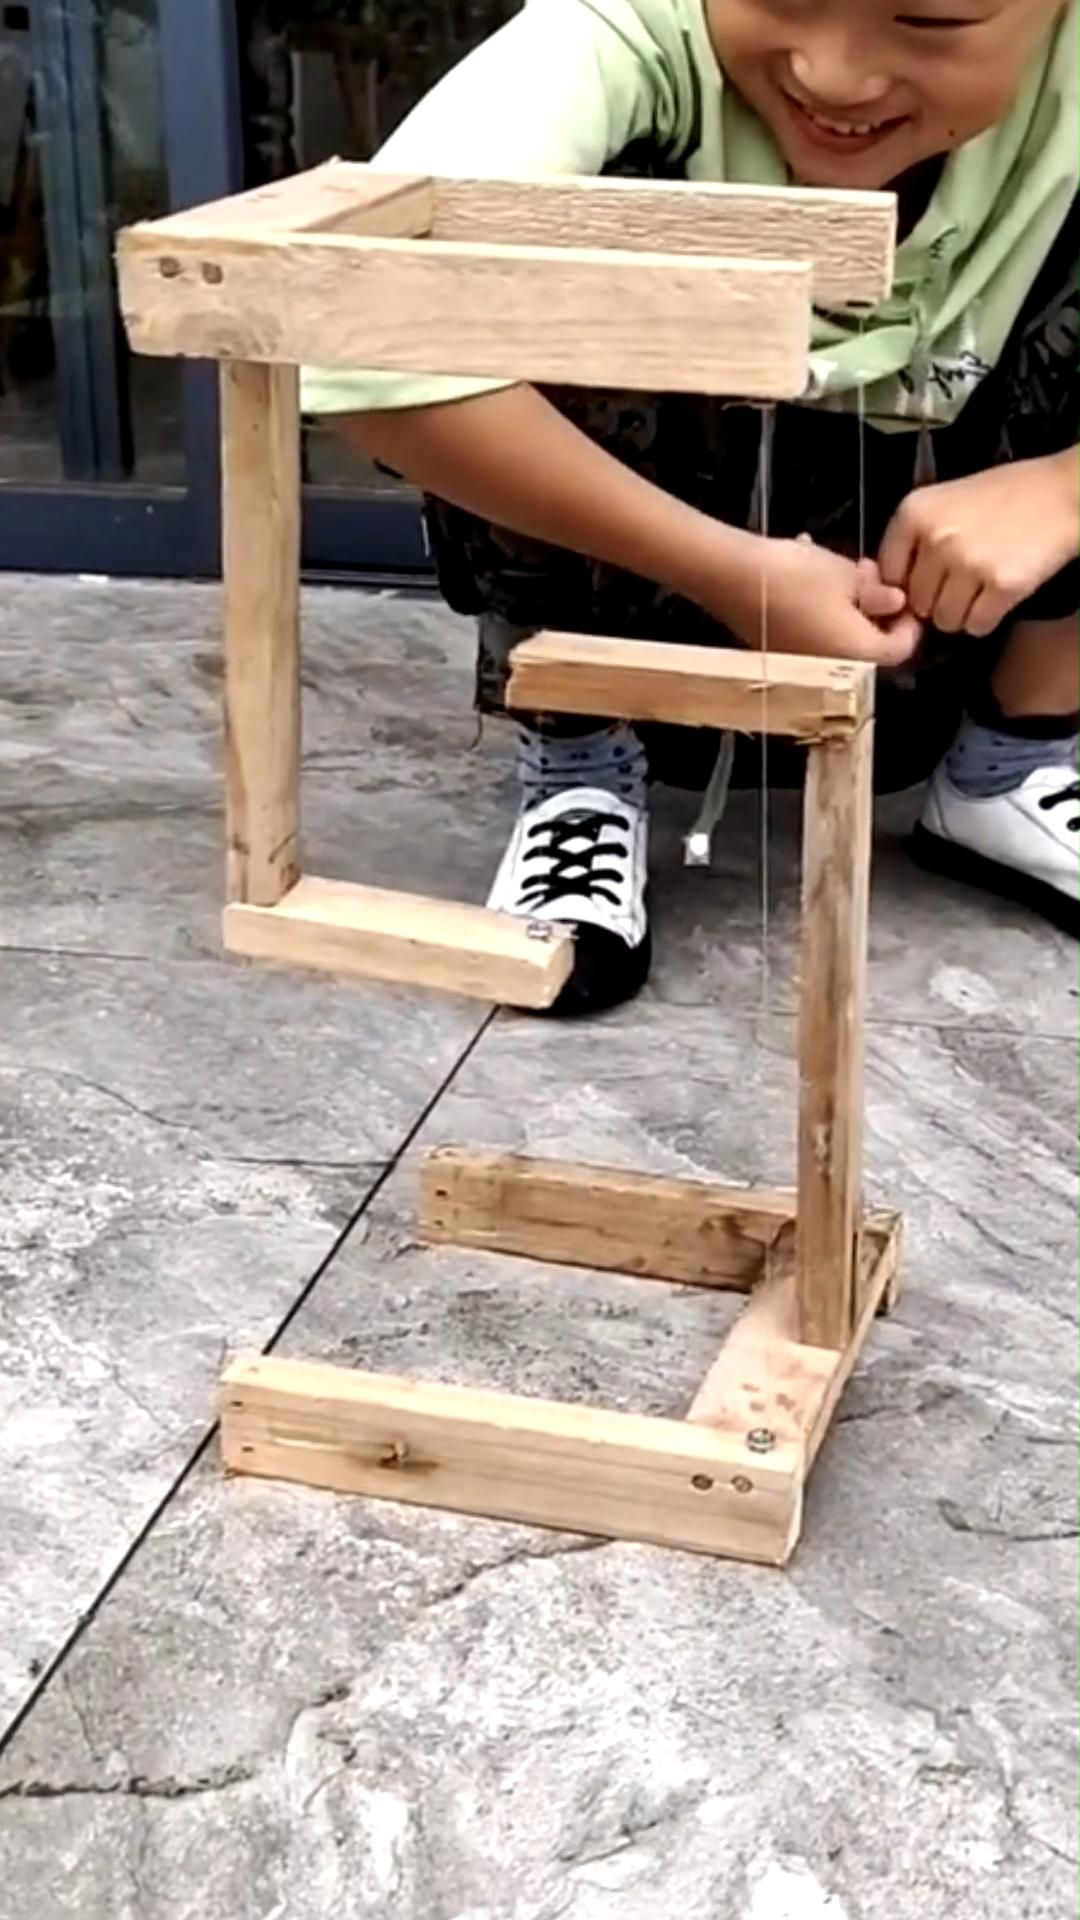 Impossible tension - science for kids